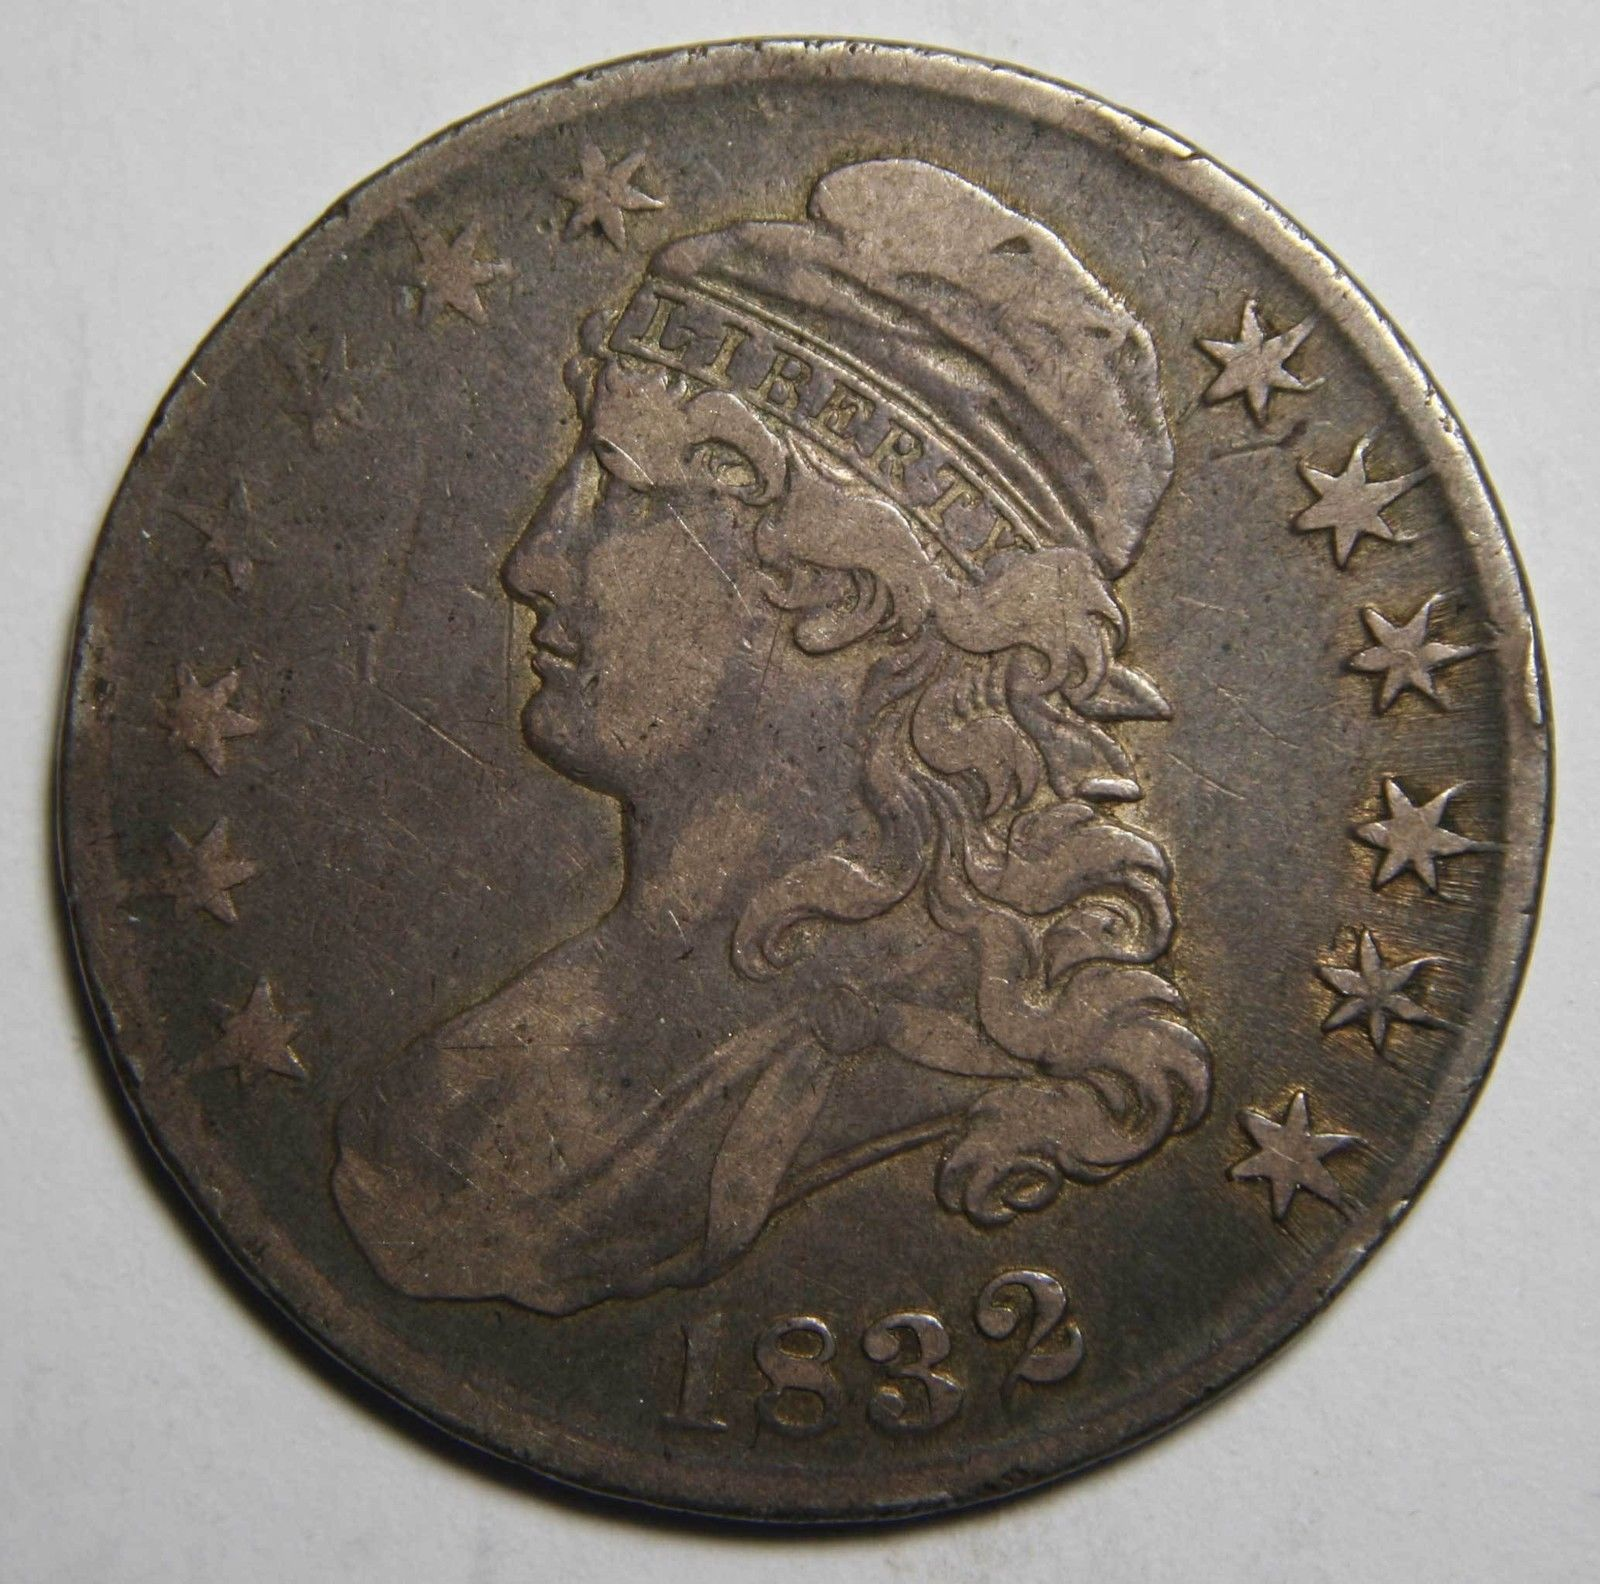 1832 Capped Bust Half Dollar 50¢ Coin Lot# MZ 4138